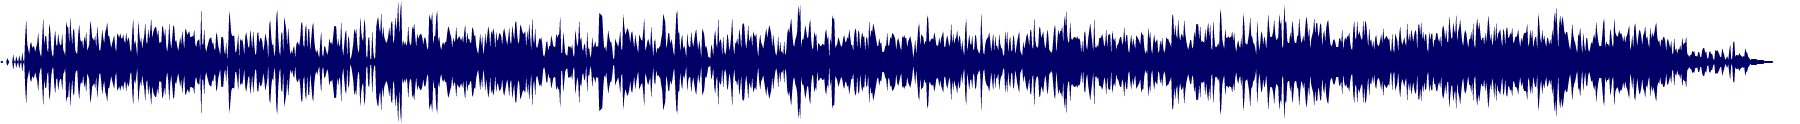 waveform of track #68281